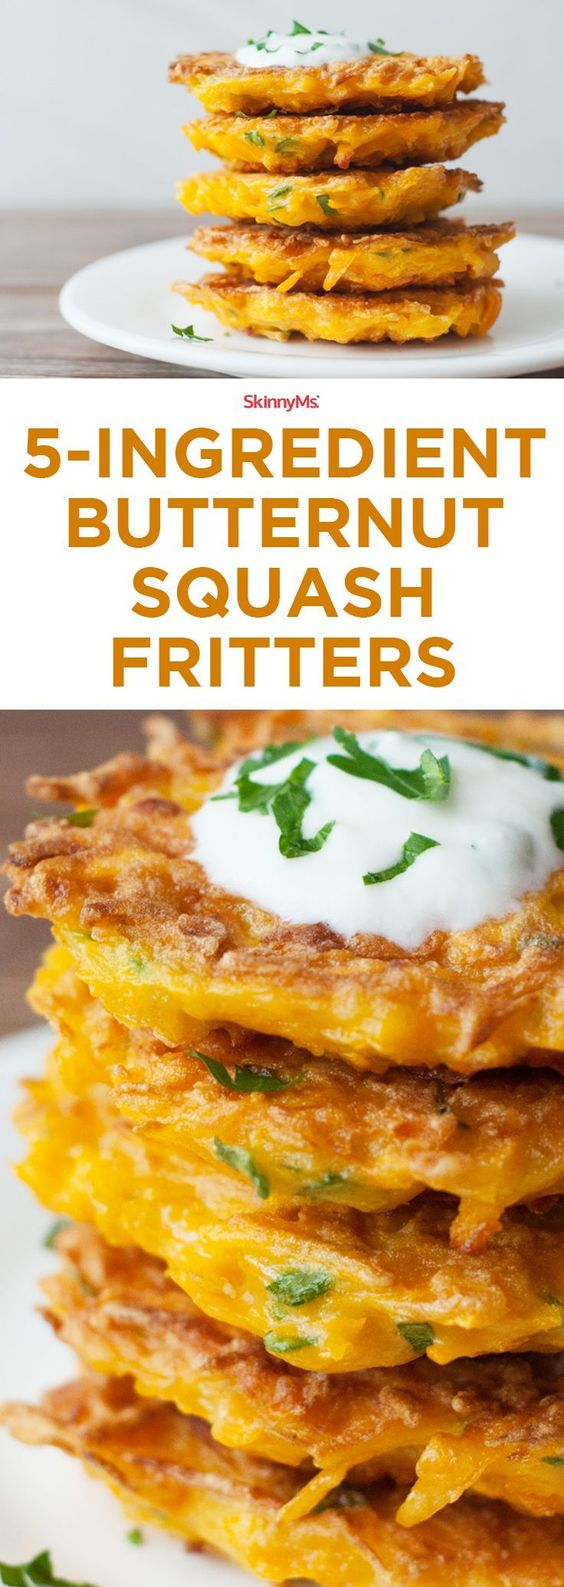 5-Ingredient Butternut Squash Fritters